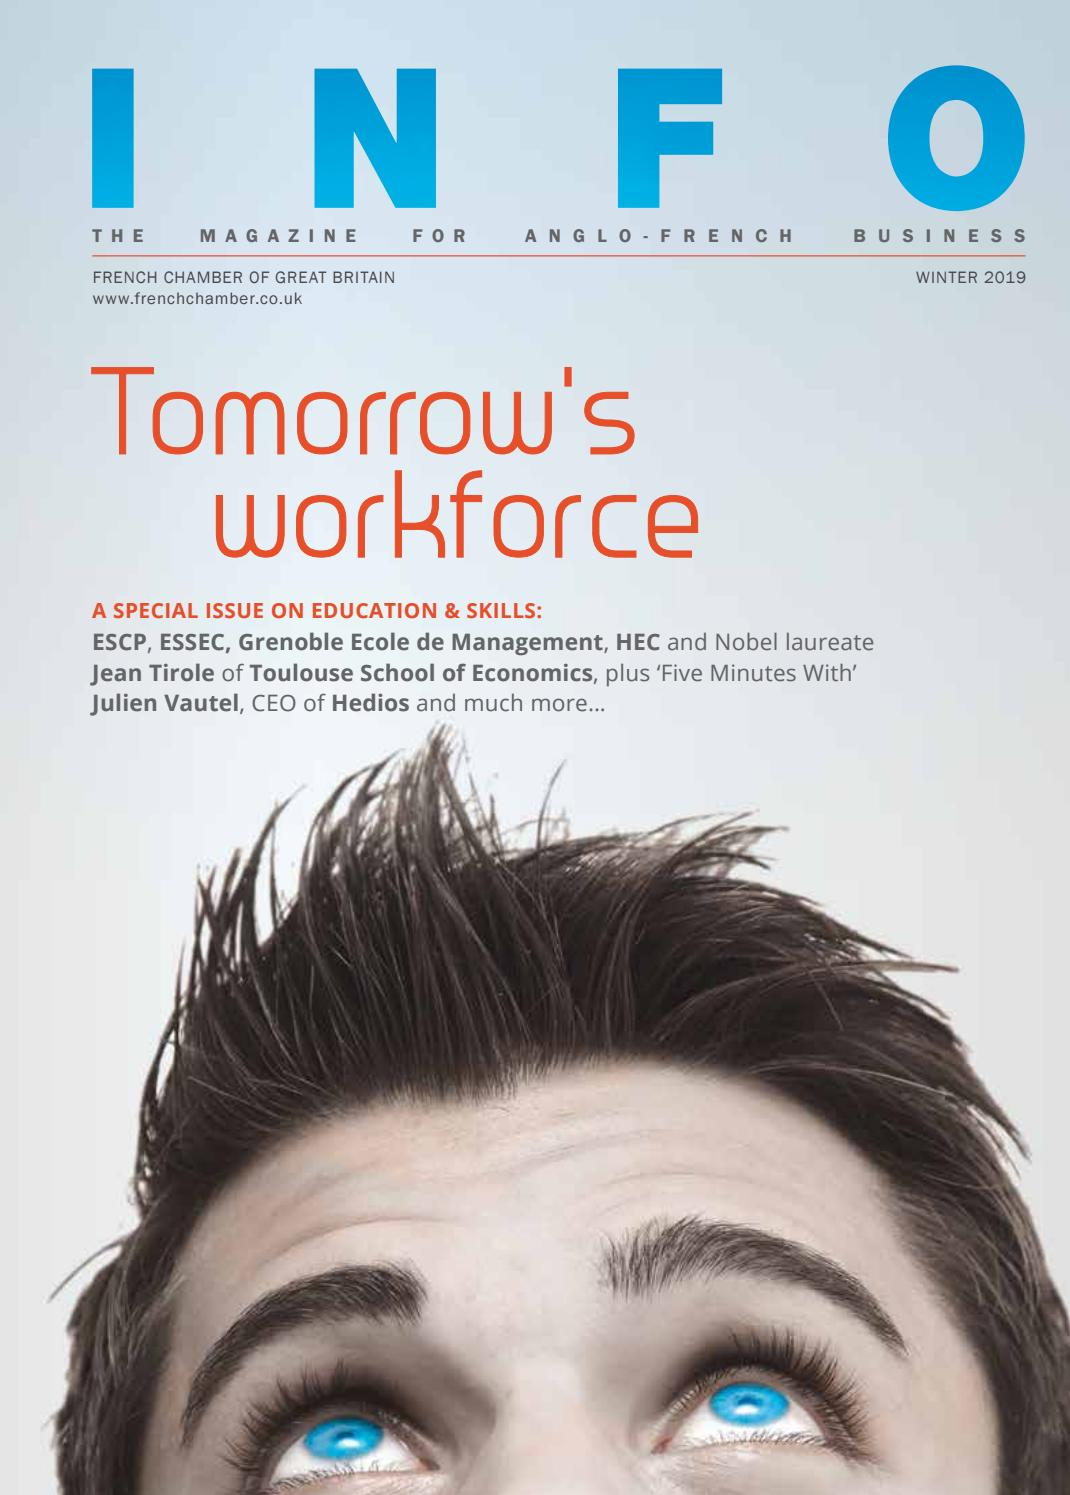 30e1c6a054d Tomorrow's Workforce by French Chamber of Commerce in Great Britain - issuu